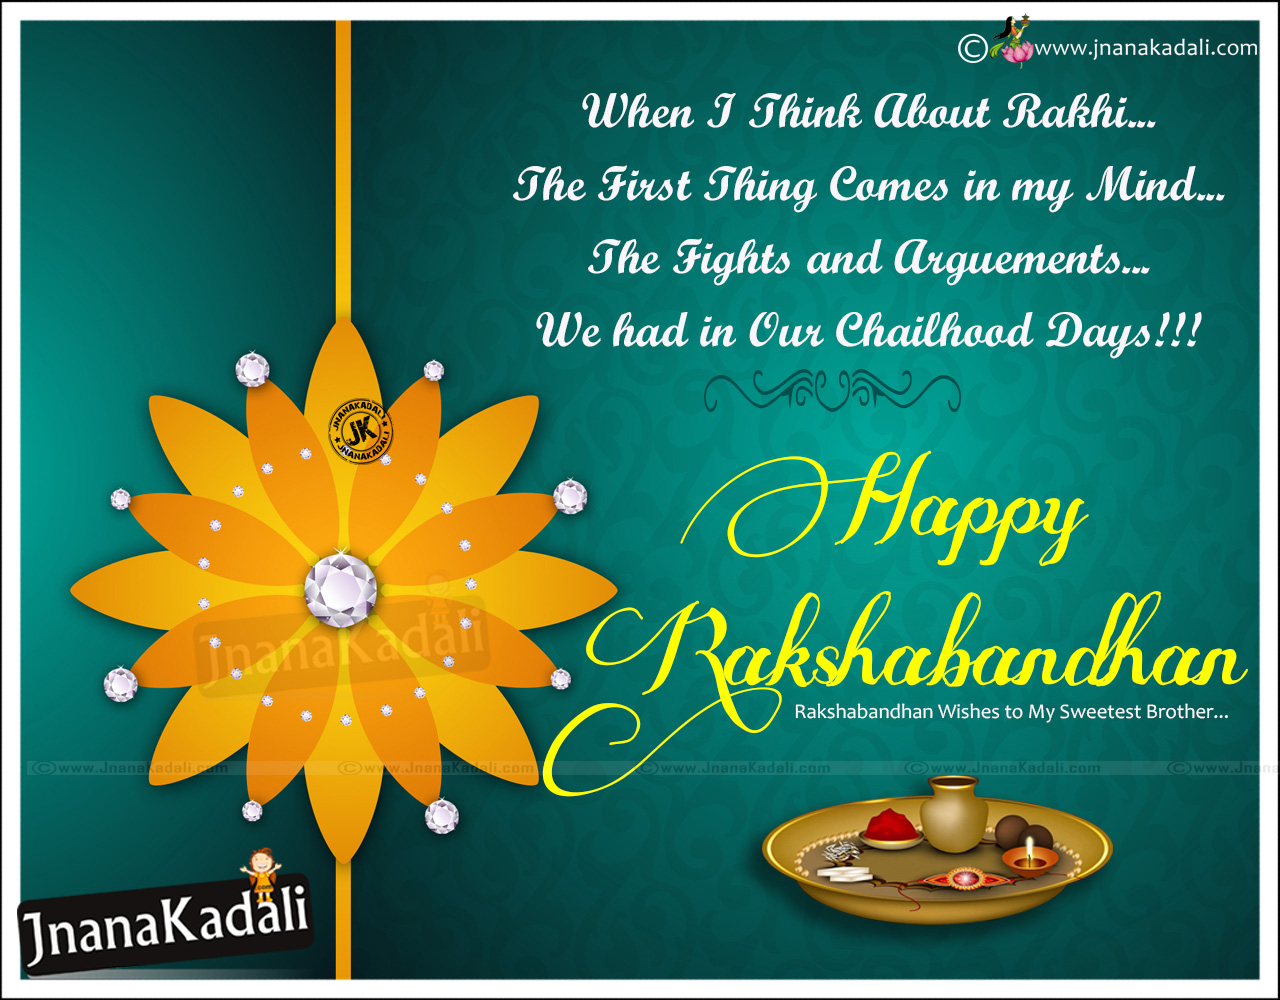 Best Quotes For Brother On Raksha Bandhan: JNANA KADALI.COM